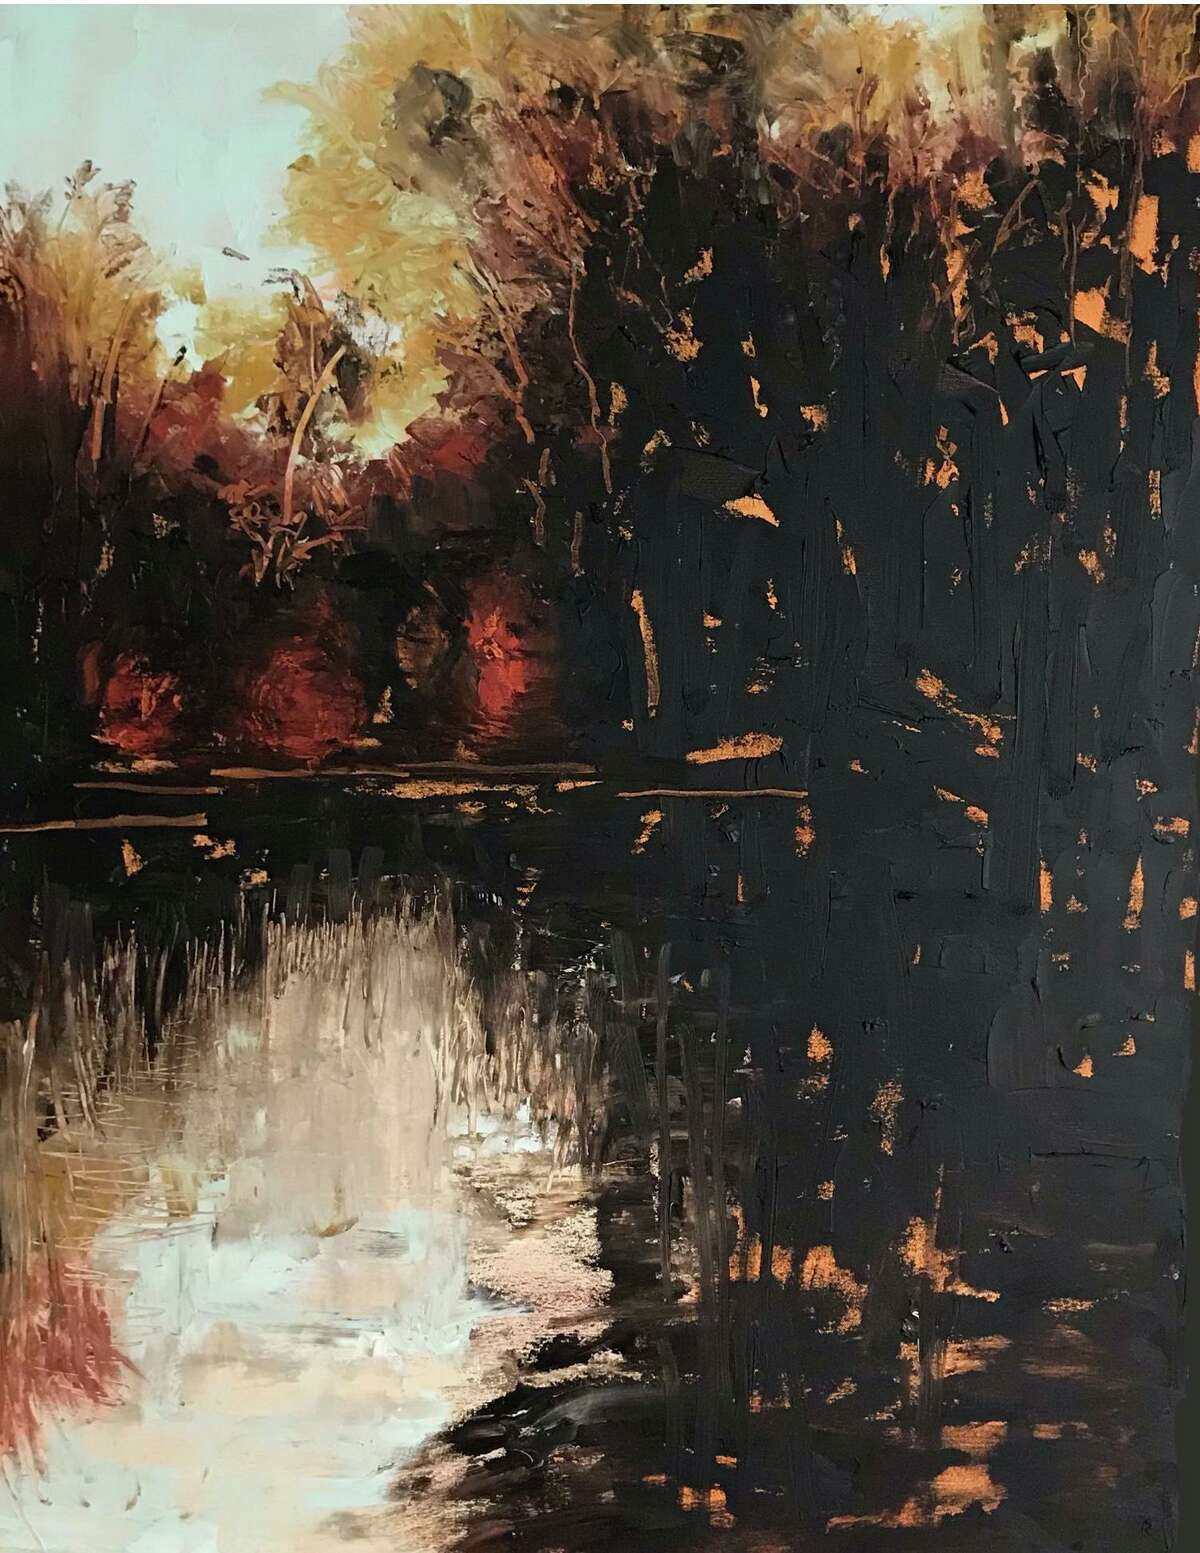 Houston painter Margaret Miller's Fall Reflections, part of her Broken Landscapes exhibition at Archway Gallery